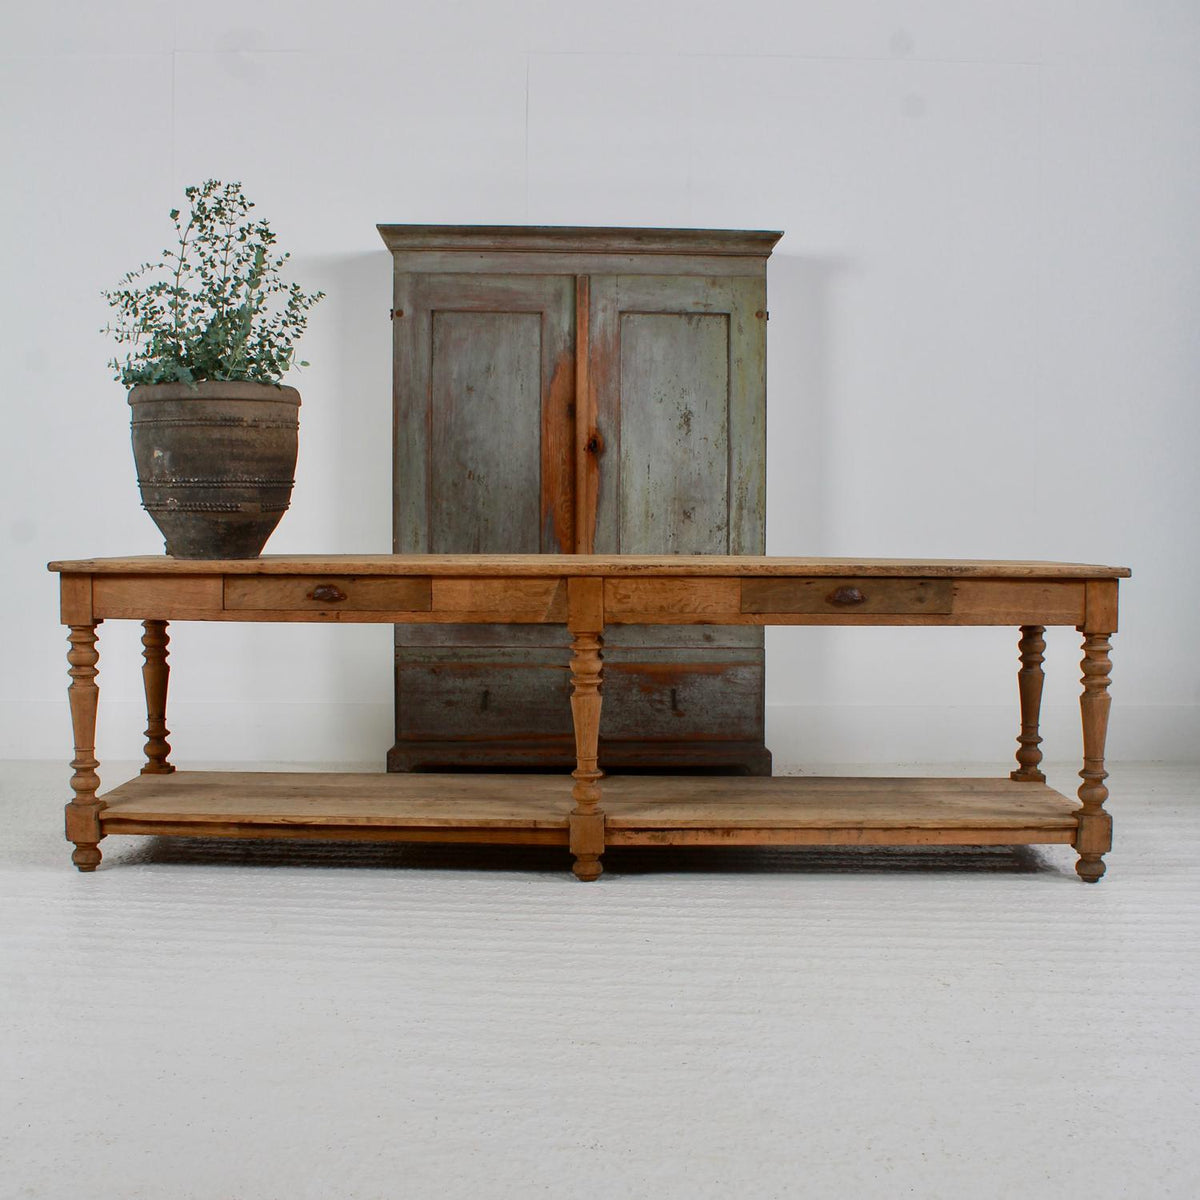 Magnificent FRENCH 19TH CENTURY OAK DRAPER/CONSOLE TABLE